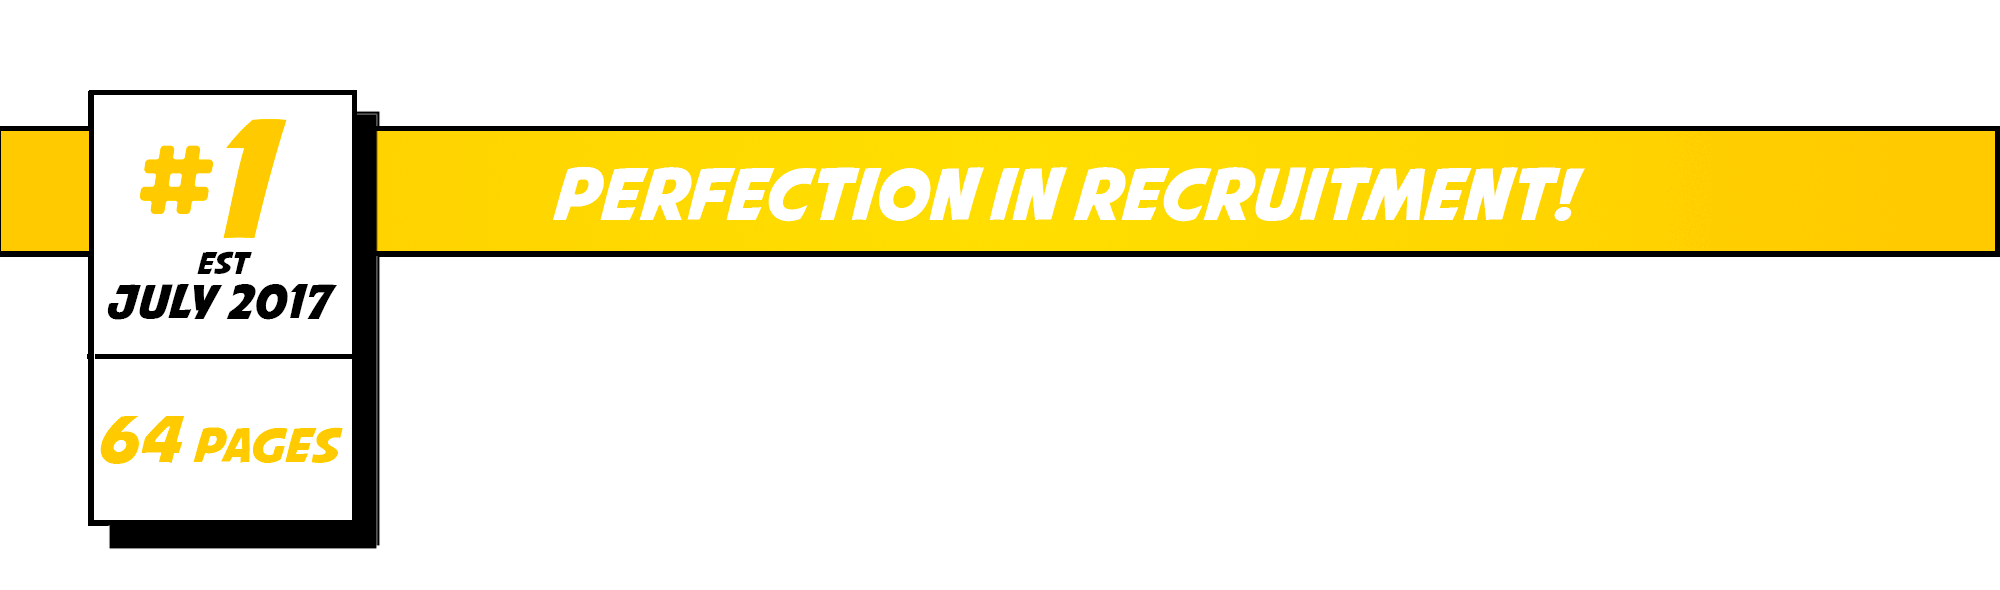 Pure Kat Consultancy Perfection in Recruitment